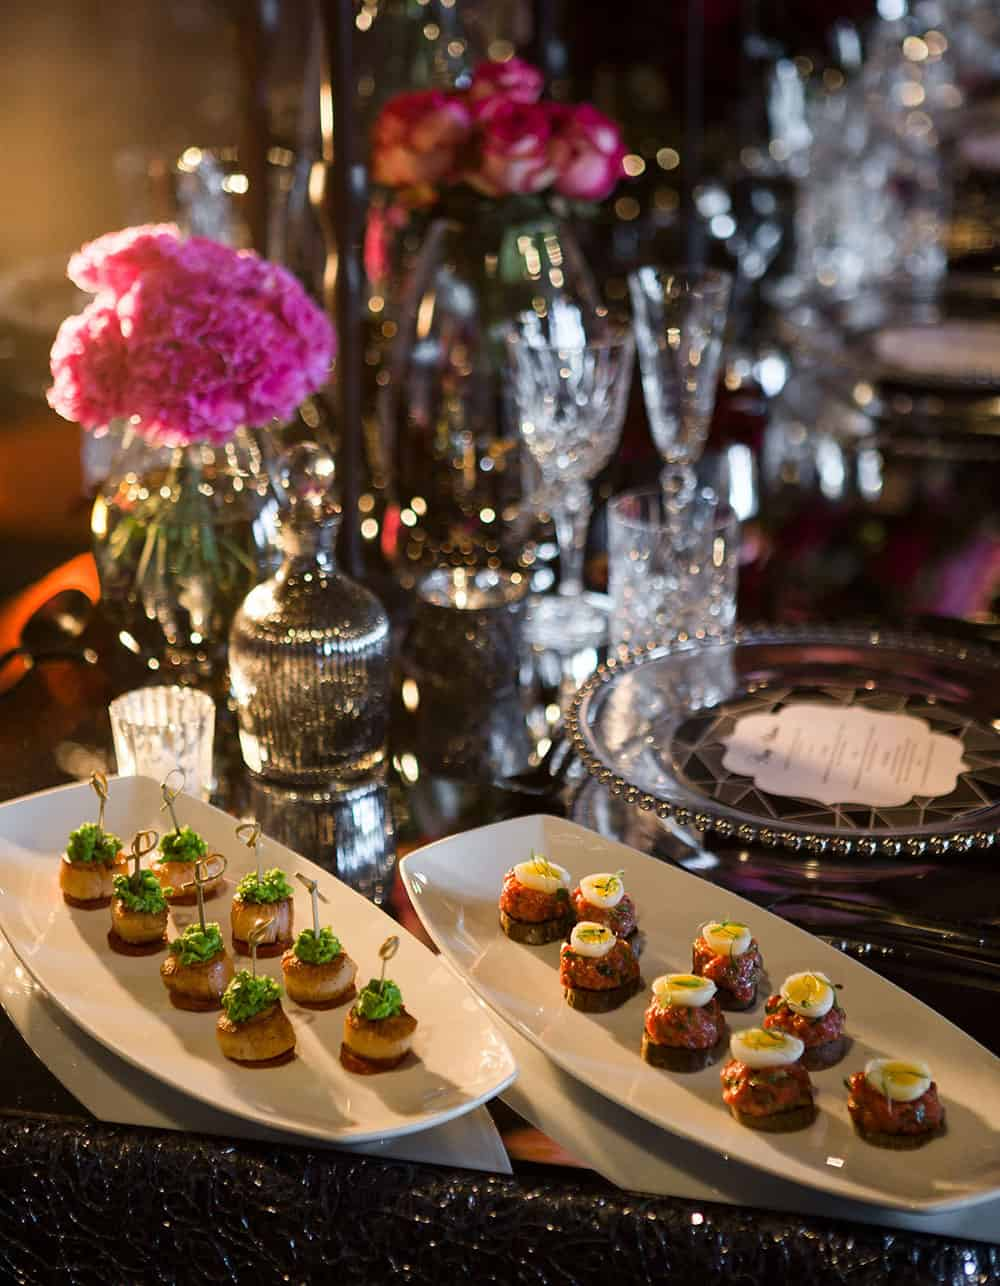 Canapes at a Customs House wedding reception.